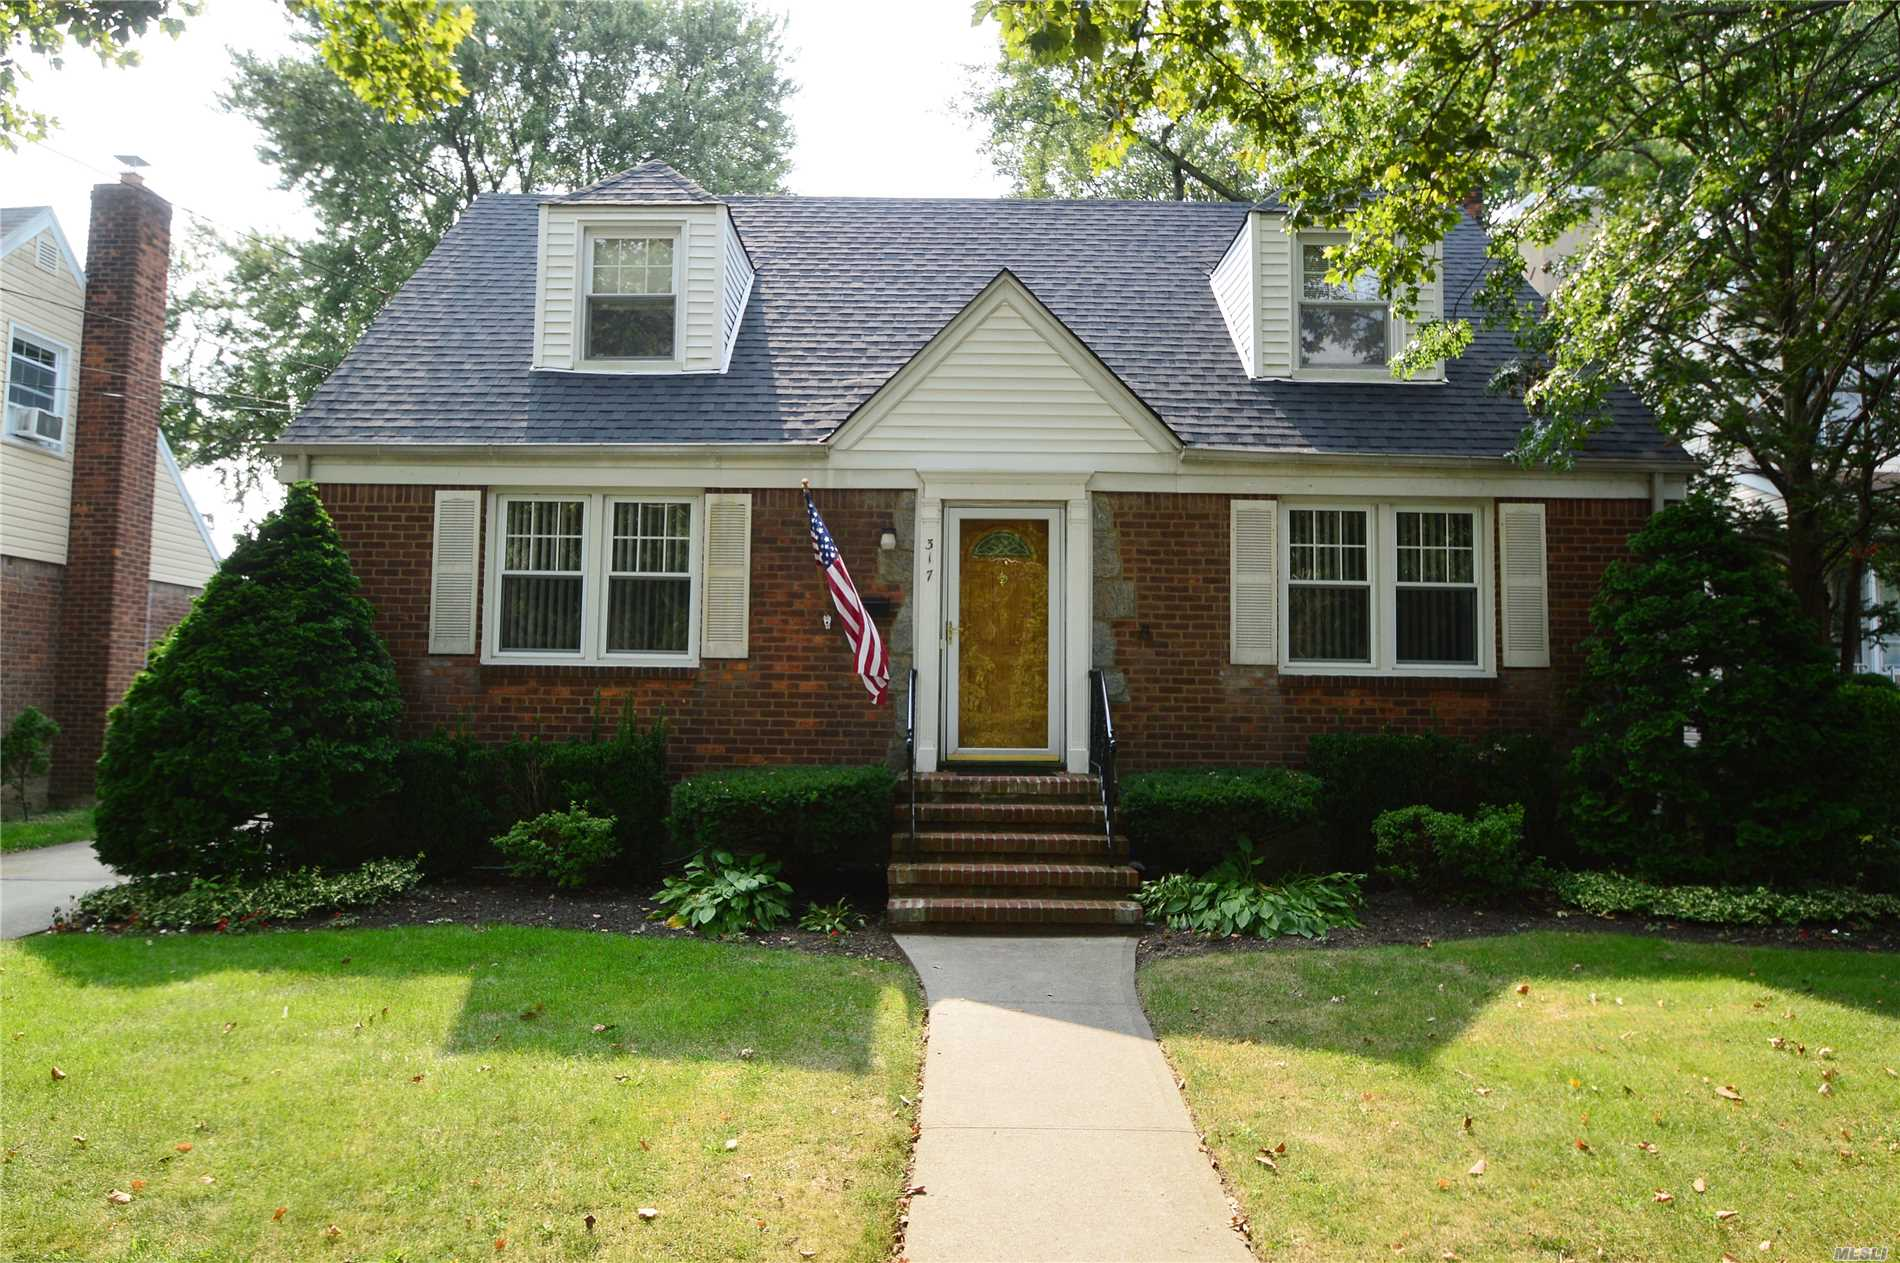 Bring In The Upcoming Holidays In Your New Home. Seller Is Ready To Sell. This Beautiful Expanded Cape Offers 4 Bedrooms, 2 Full Baths Located In The Village Of Malverne. A Must To Have, Full Finished Basement To Make Your Space, Complete With, An Exit To The Backyard. The Backyard Is A Gem, Great For The Kids And Pets To Enjoy Their Days. Minutes Away From Public Transportation, Close To All Of The Village Schools, And Within Minutes Of Shopping. Make This Your Dream Home Today!